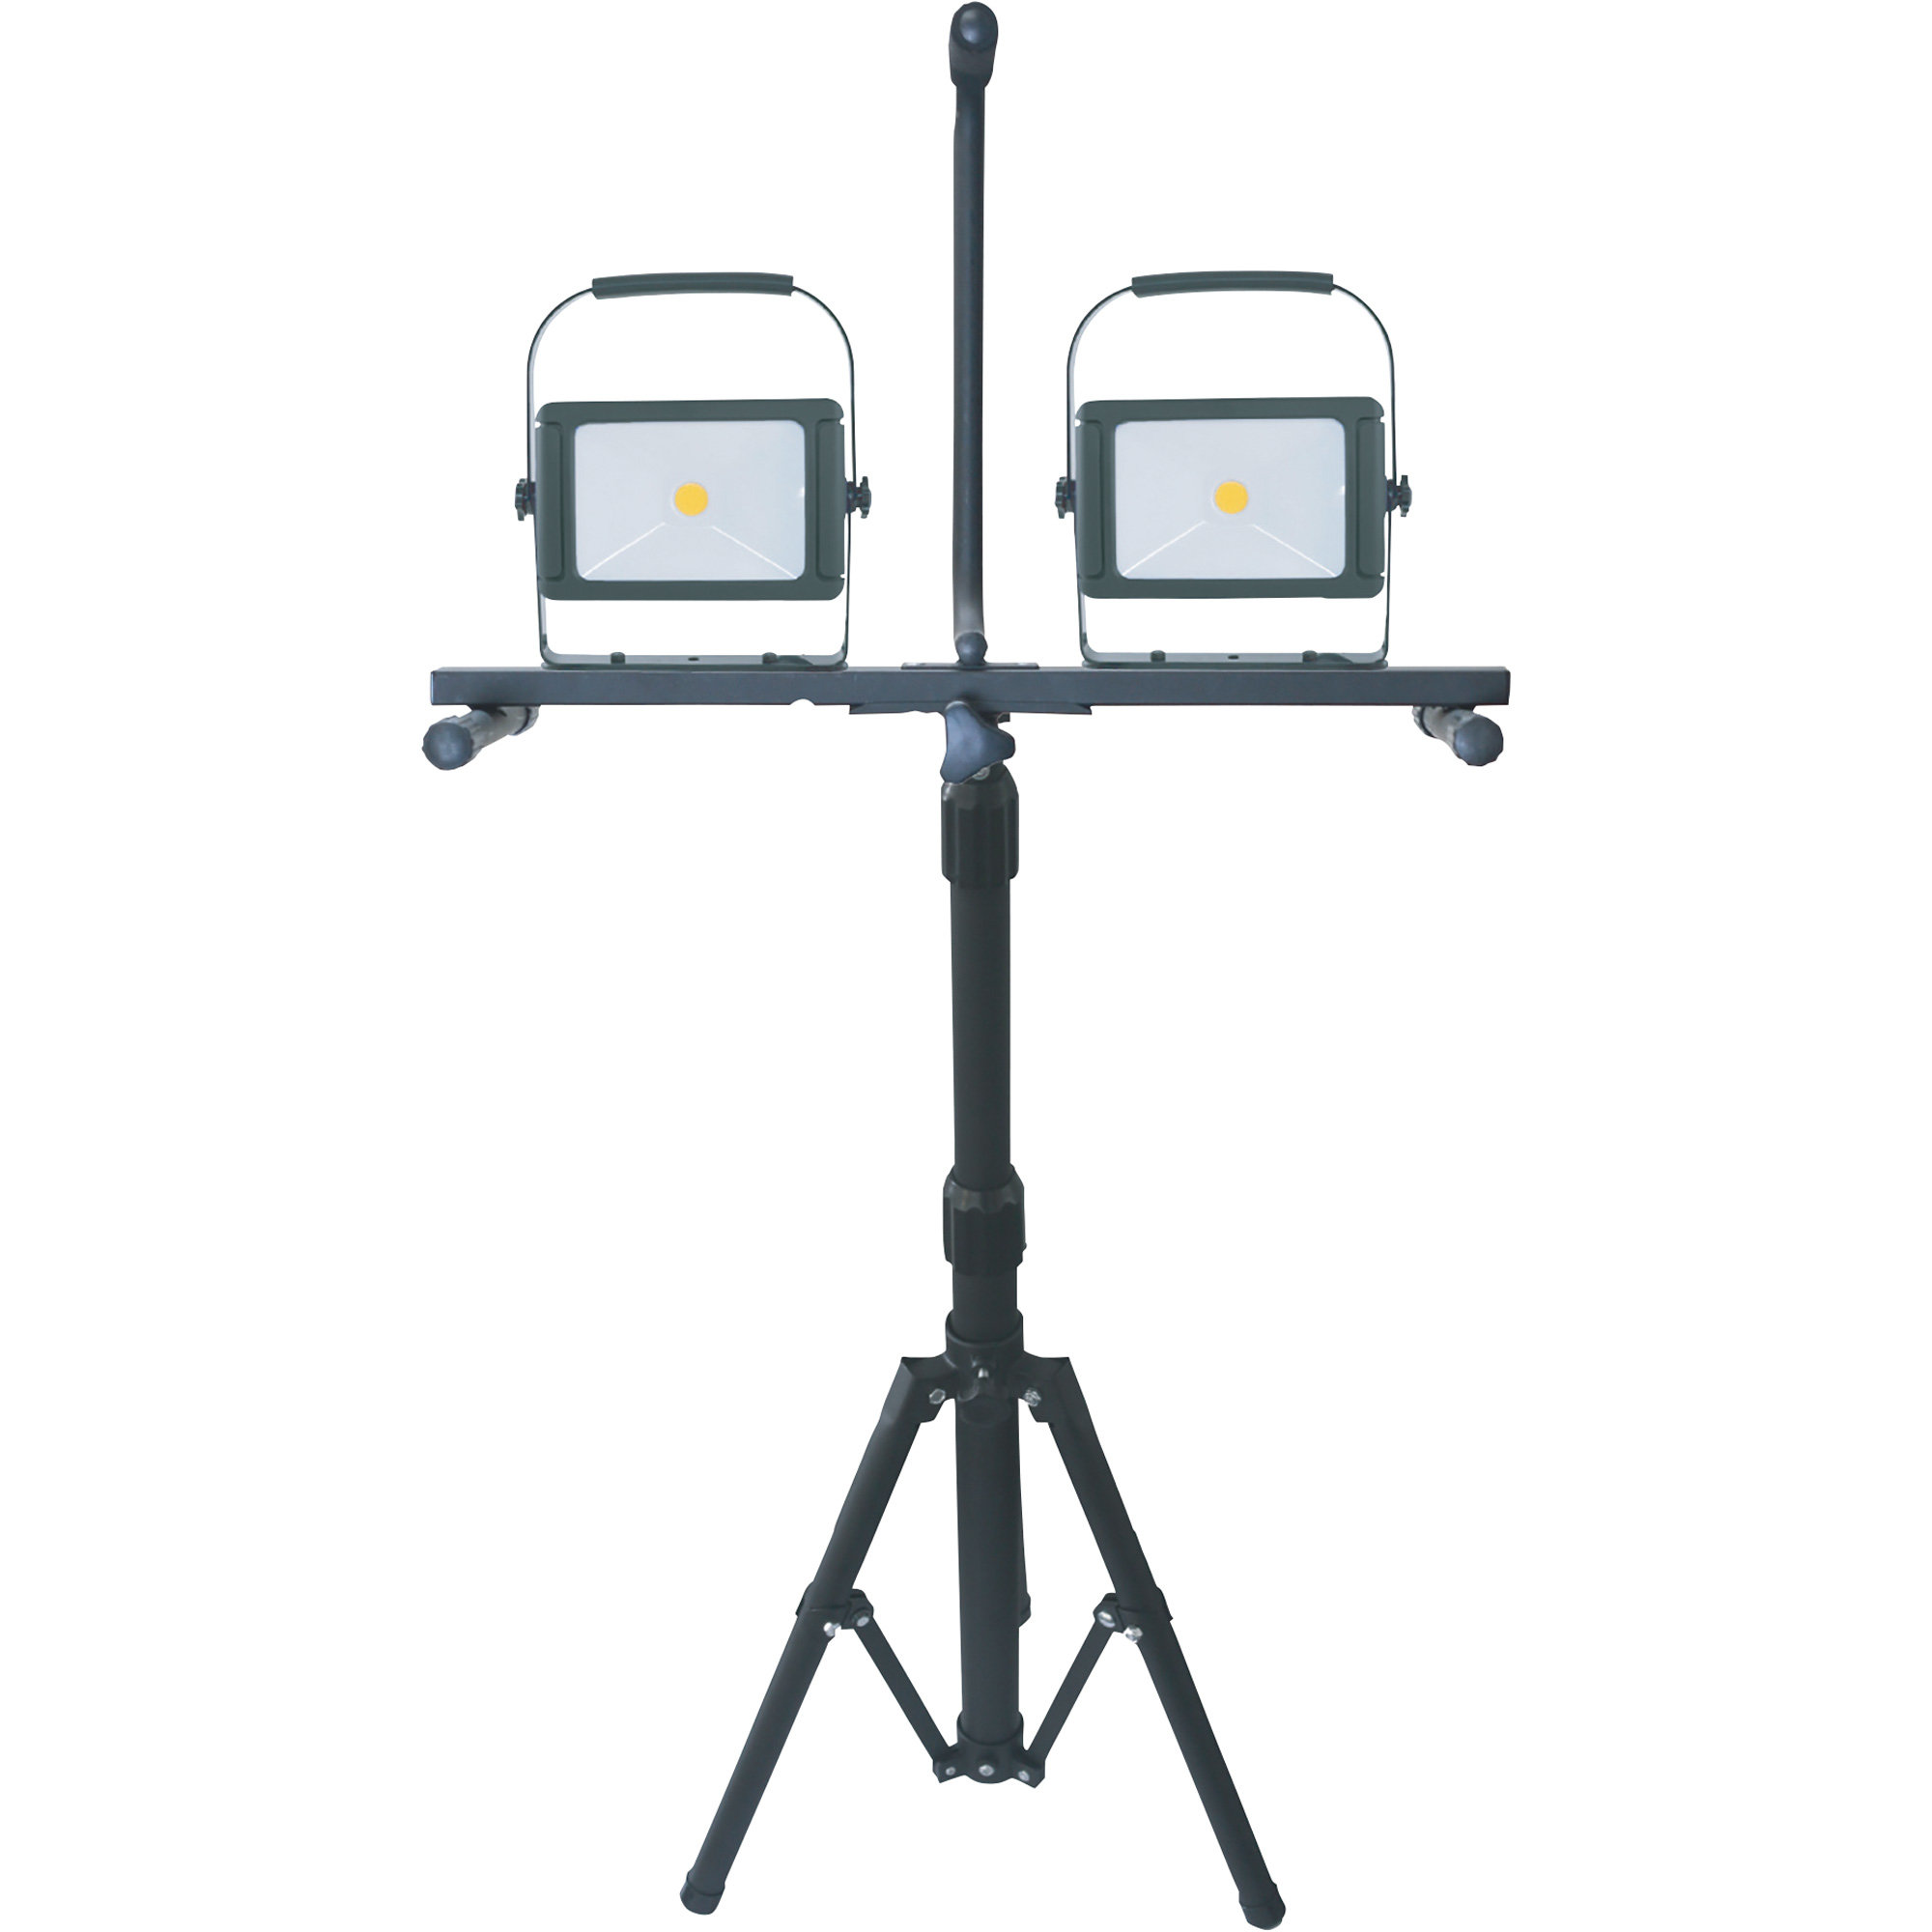 Stonepoint Led Dual Head Portable Work Light With Adjule Tripod 10 000 Lumens Model